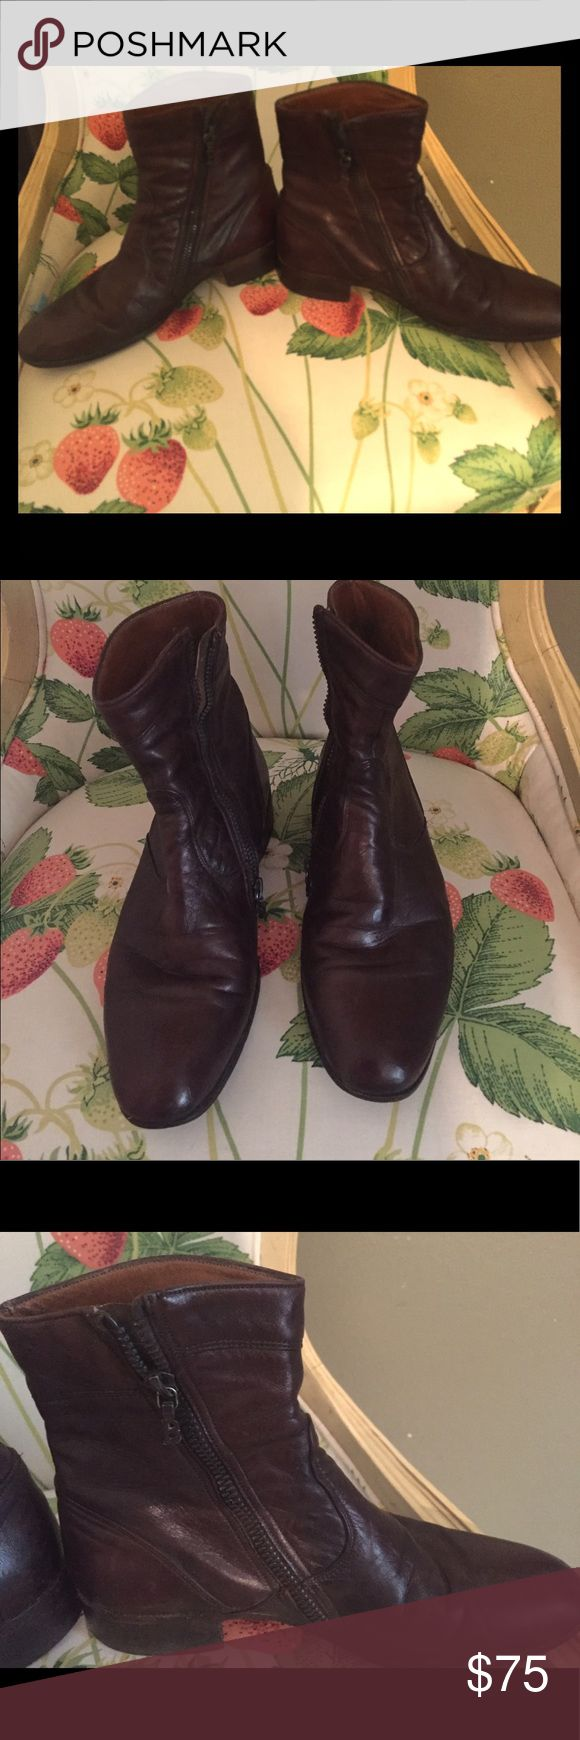 Vintage Bally Brown Low Cut Boots Vintage Bally Low Cut Dark Brown Boots. Say a 5.5 men but fit 7.5 women. The ankle is fairly small and fitted. They are Great Vintage Condition. Please see photos and ask before purchasing...:) Bally Shoes Ankle Boots & Booties